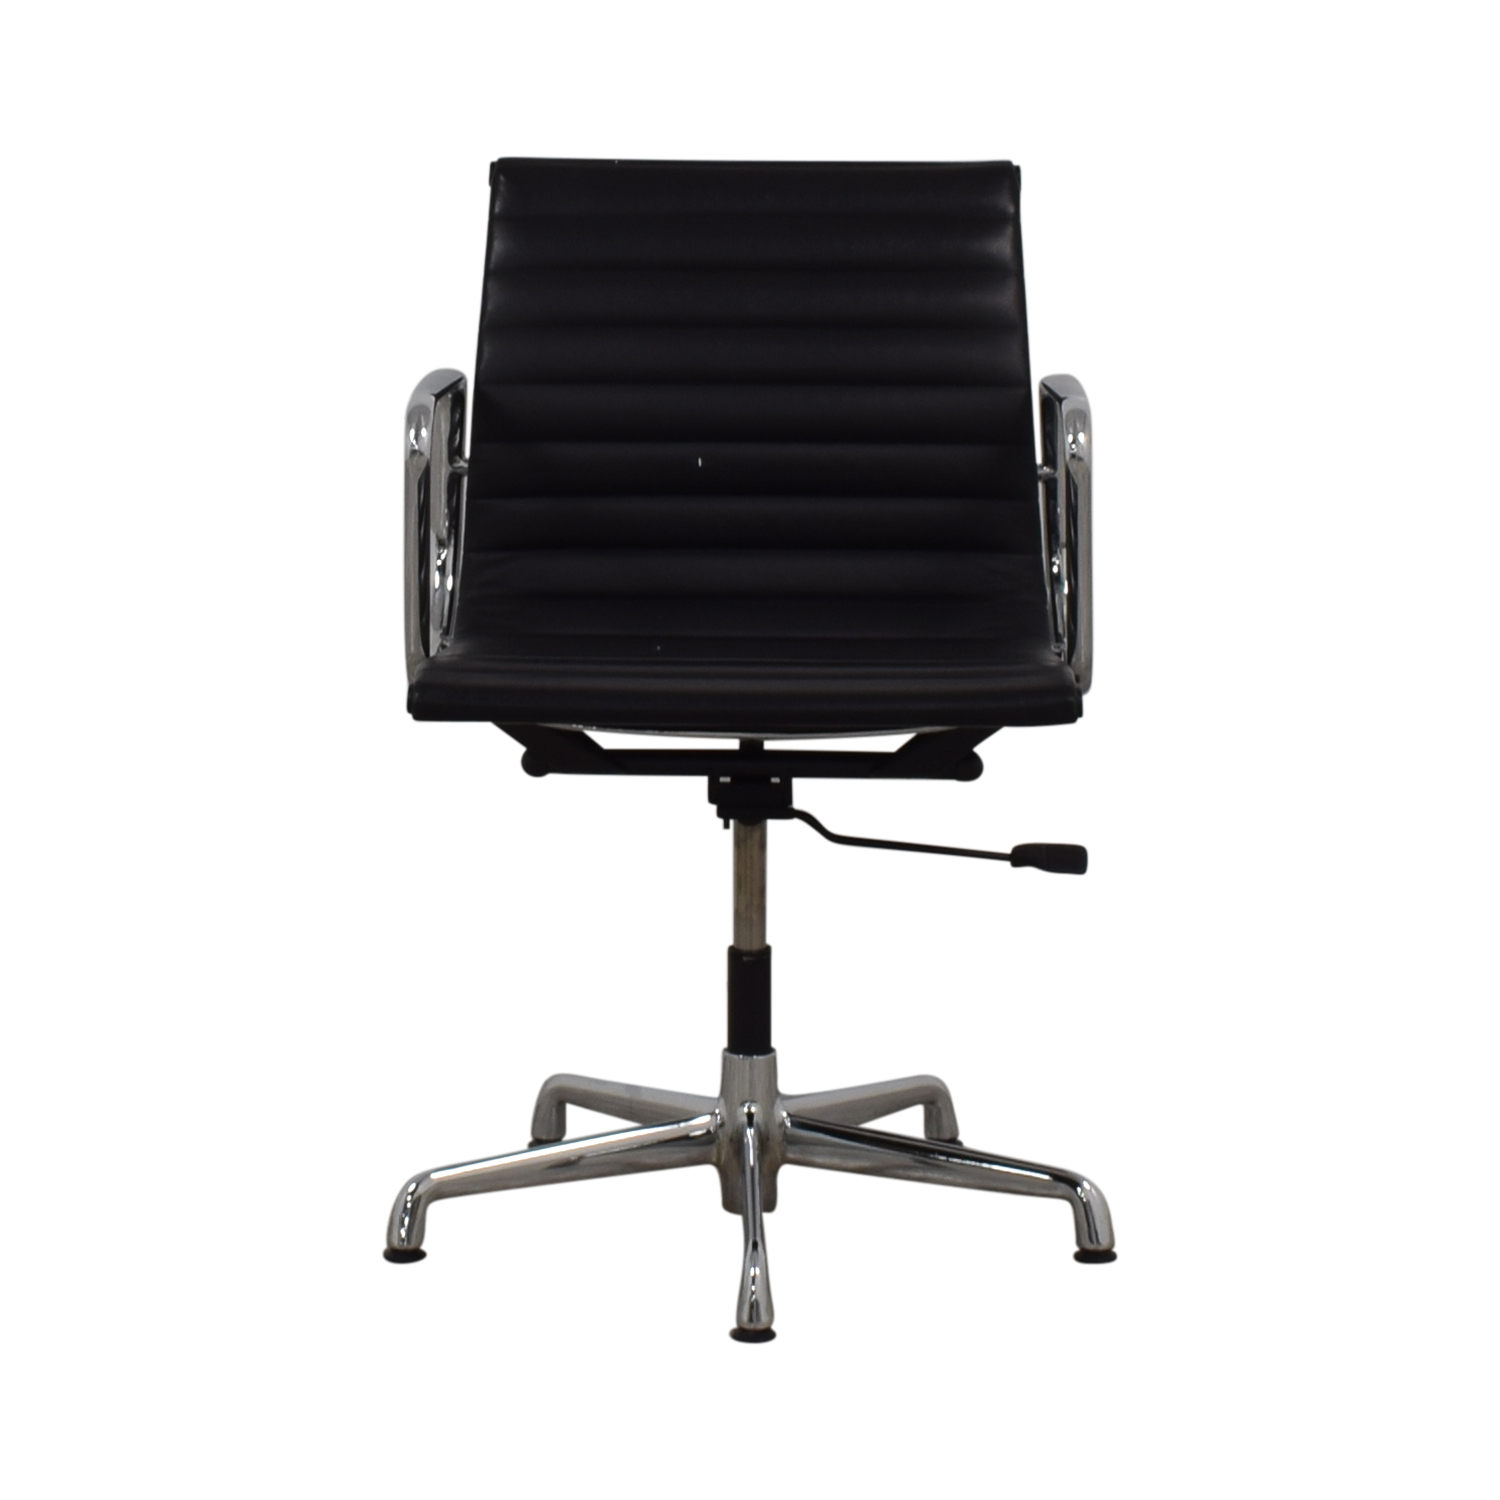 Home Office Desk Chair Home Office Chairs Used Home Office Chairs For Sale